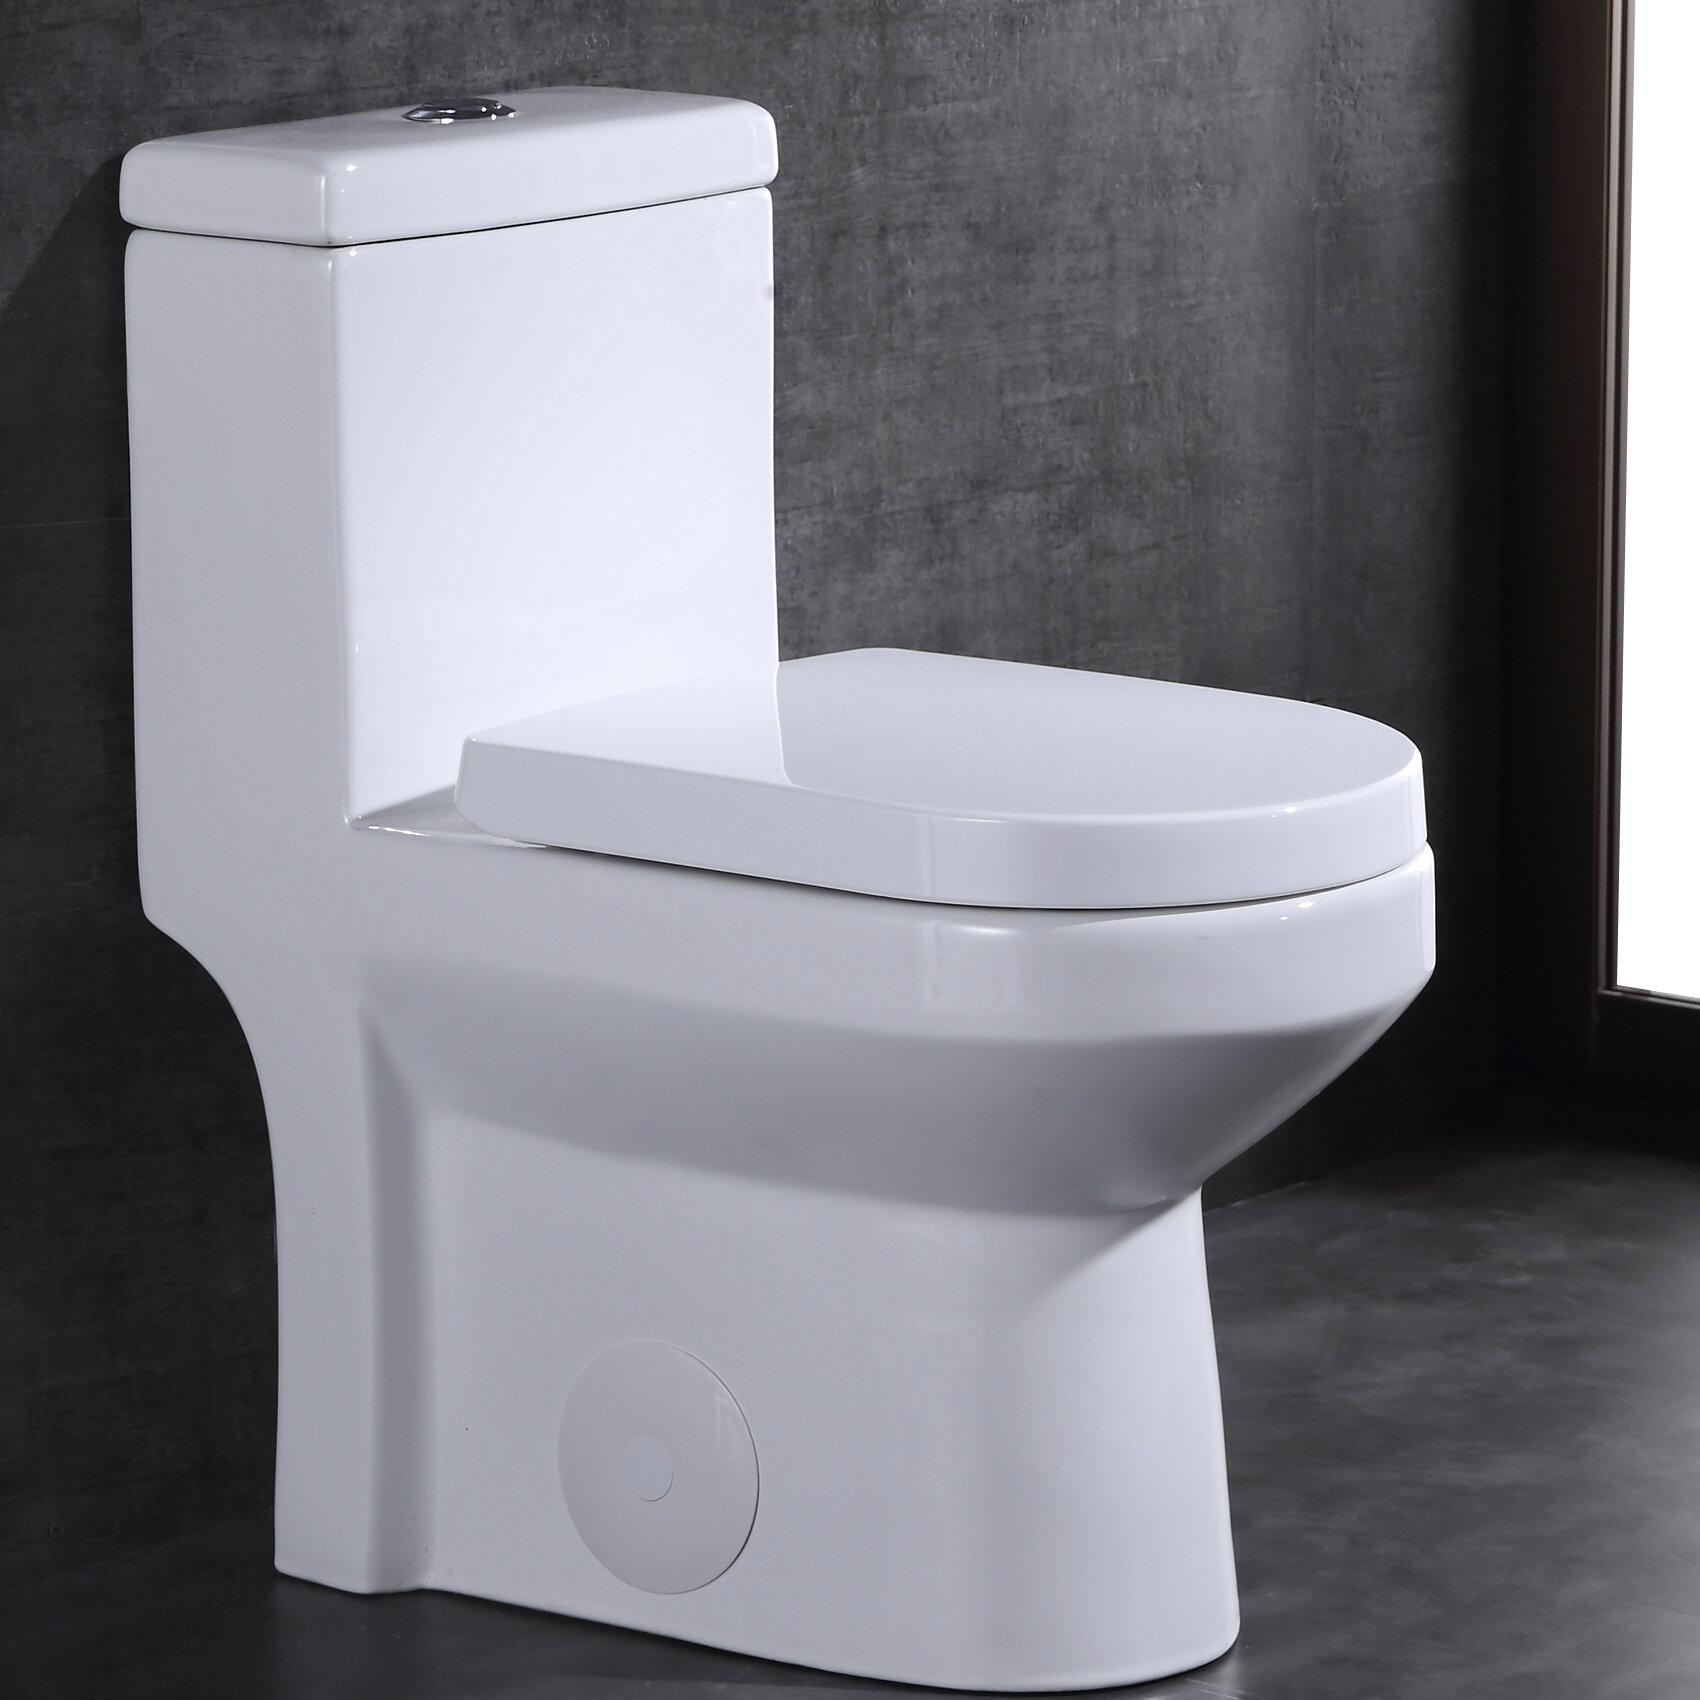 Remarkable Dual Flush 1 28 Gpf Elongated One Piece Toilet Seat Included Ocoug Best Dining Table And Chair Ideas Images Ocougorg